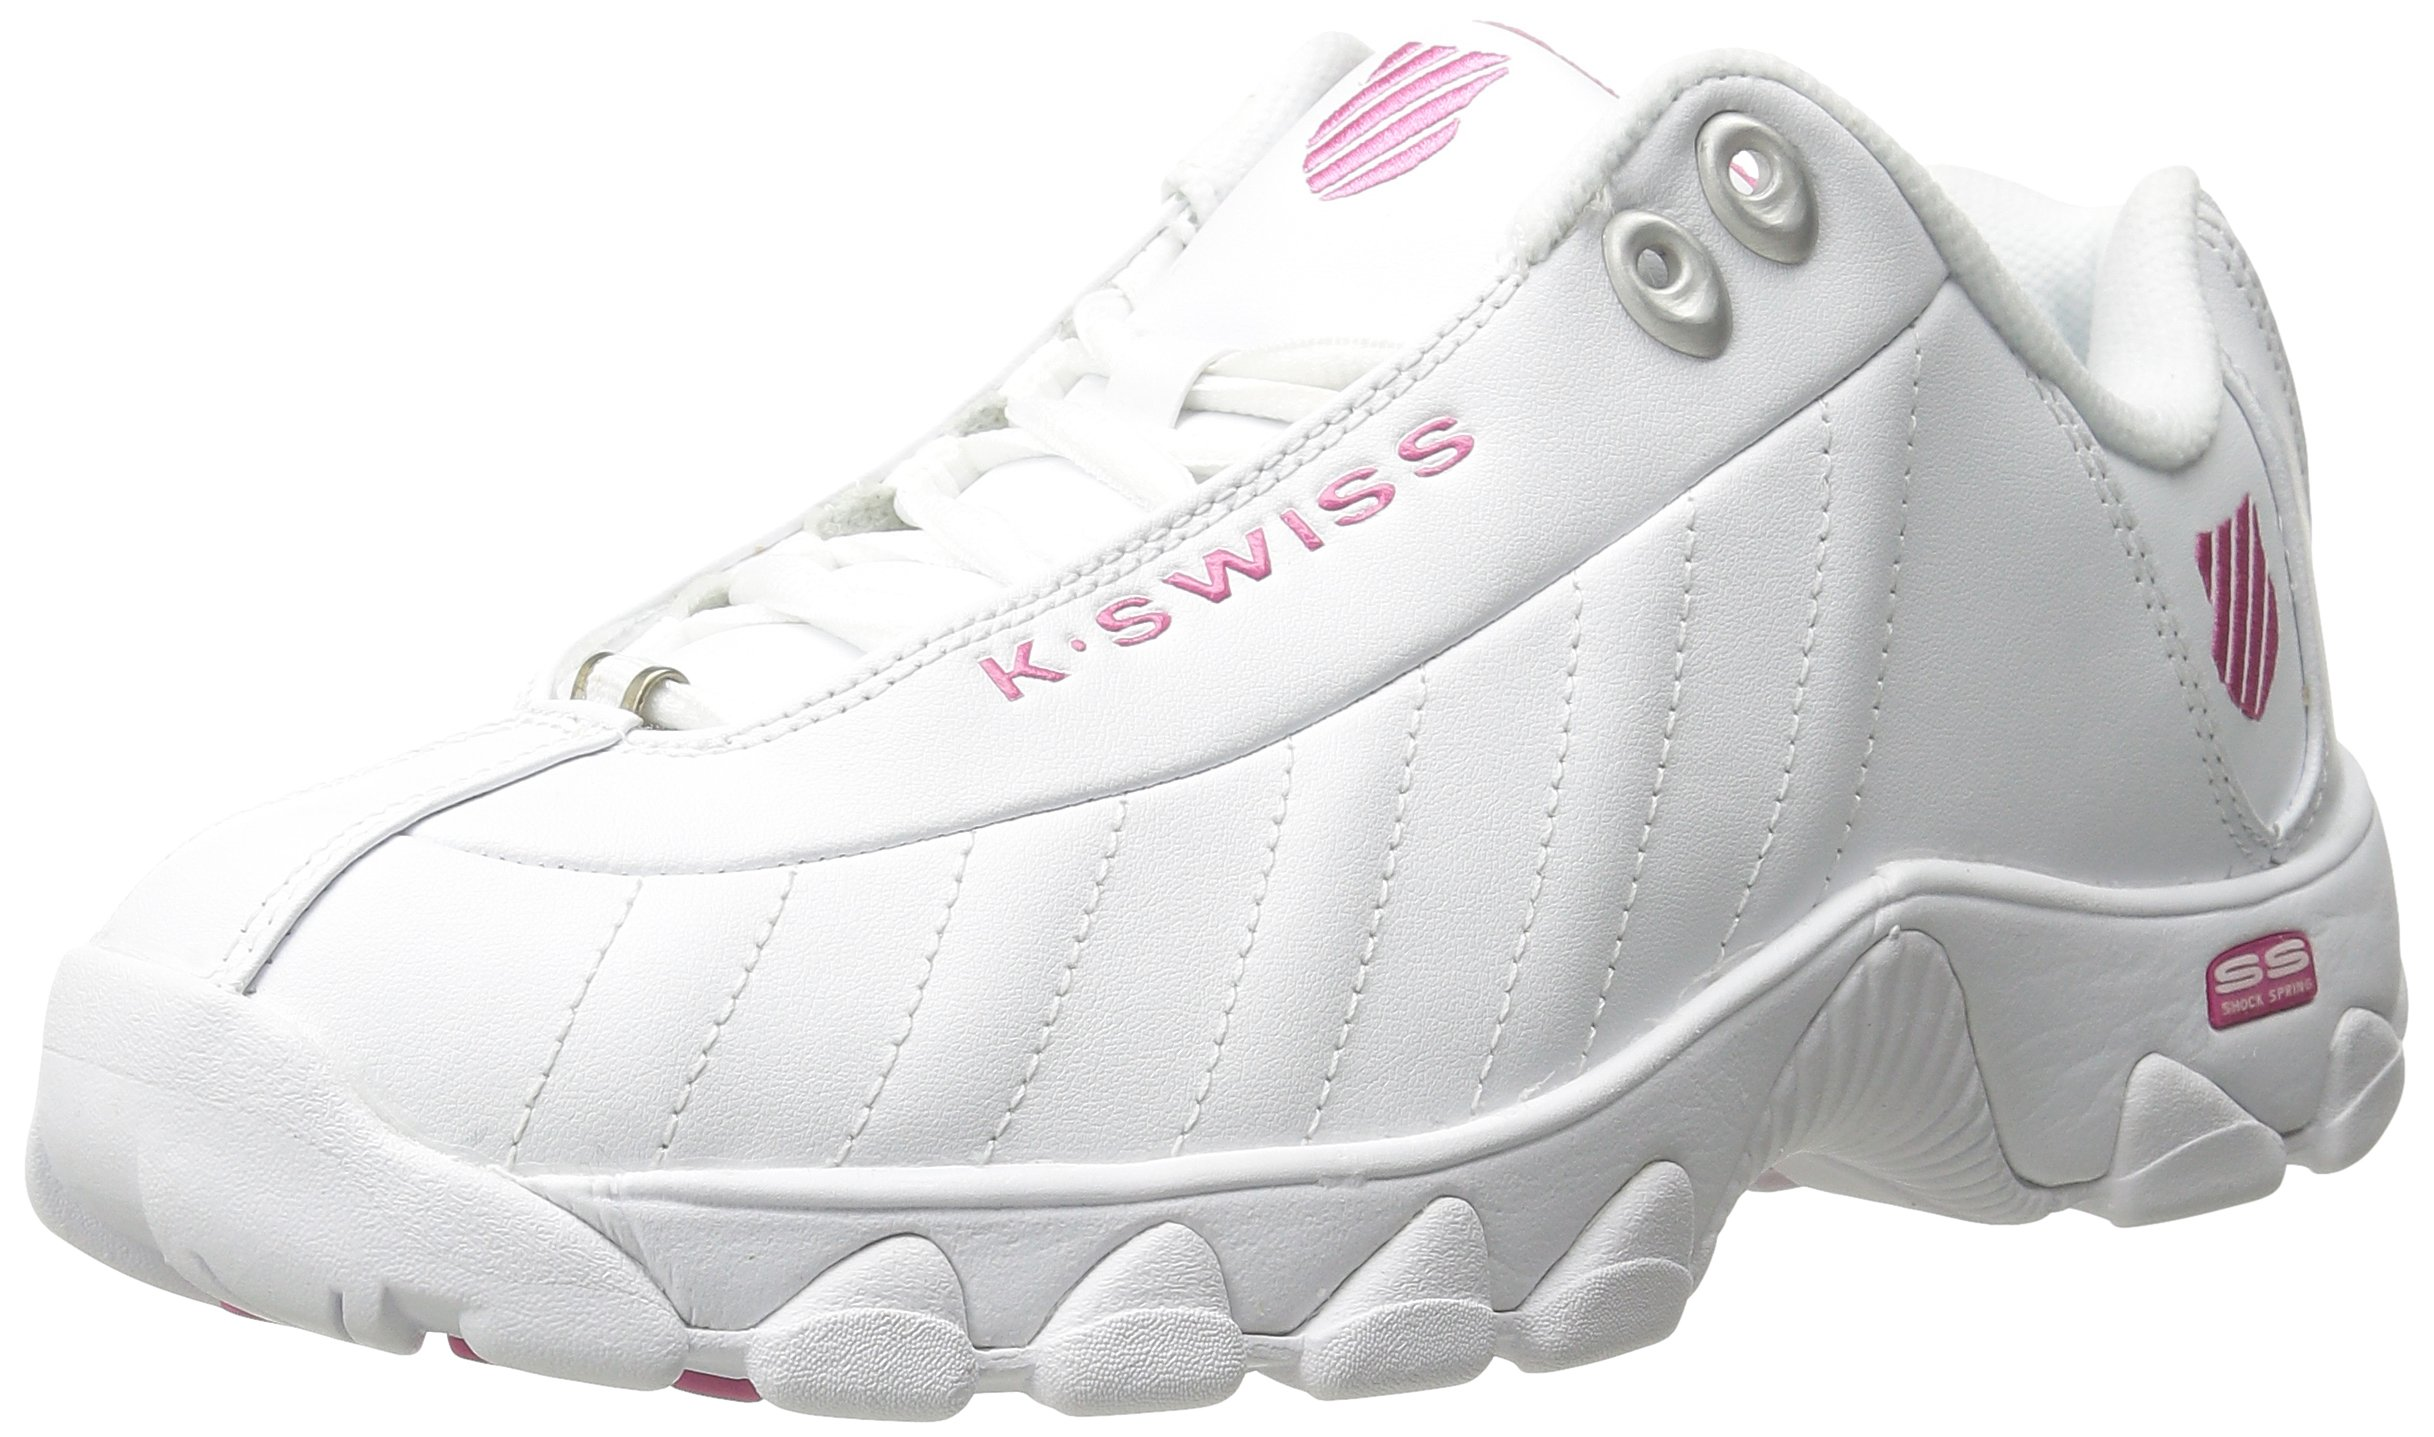 K-Swiss Women's ST329 CMF Trainer Lifestyle Sneaker, White/Shocking Pink, 8.5 M US